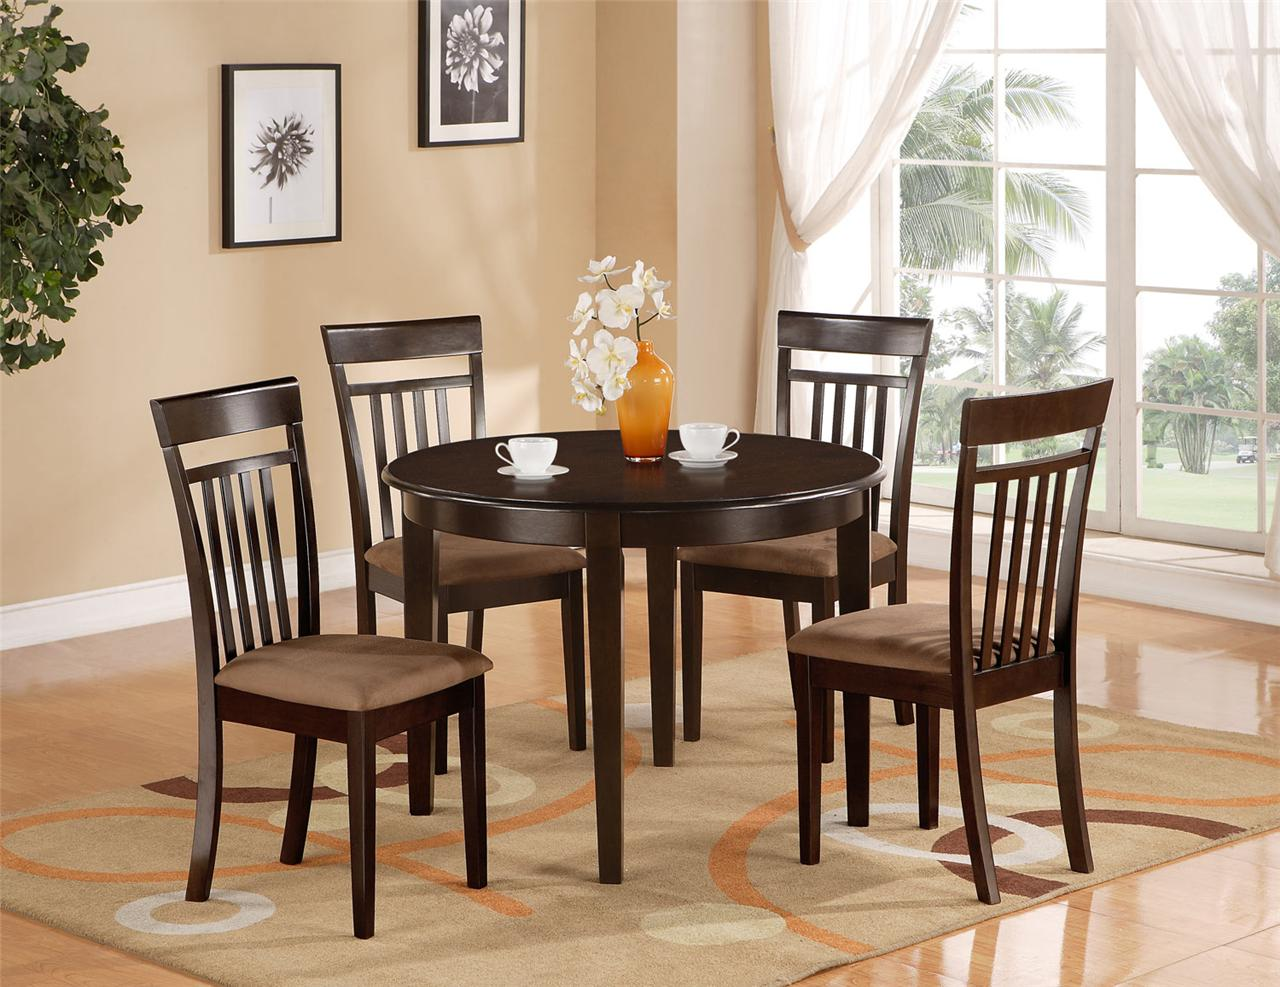 5 PC Round Kitchen Dinette Table 4 Chairs Cappuccino | eBay